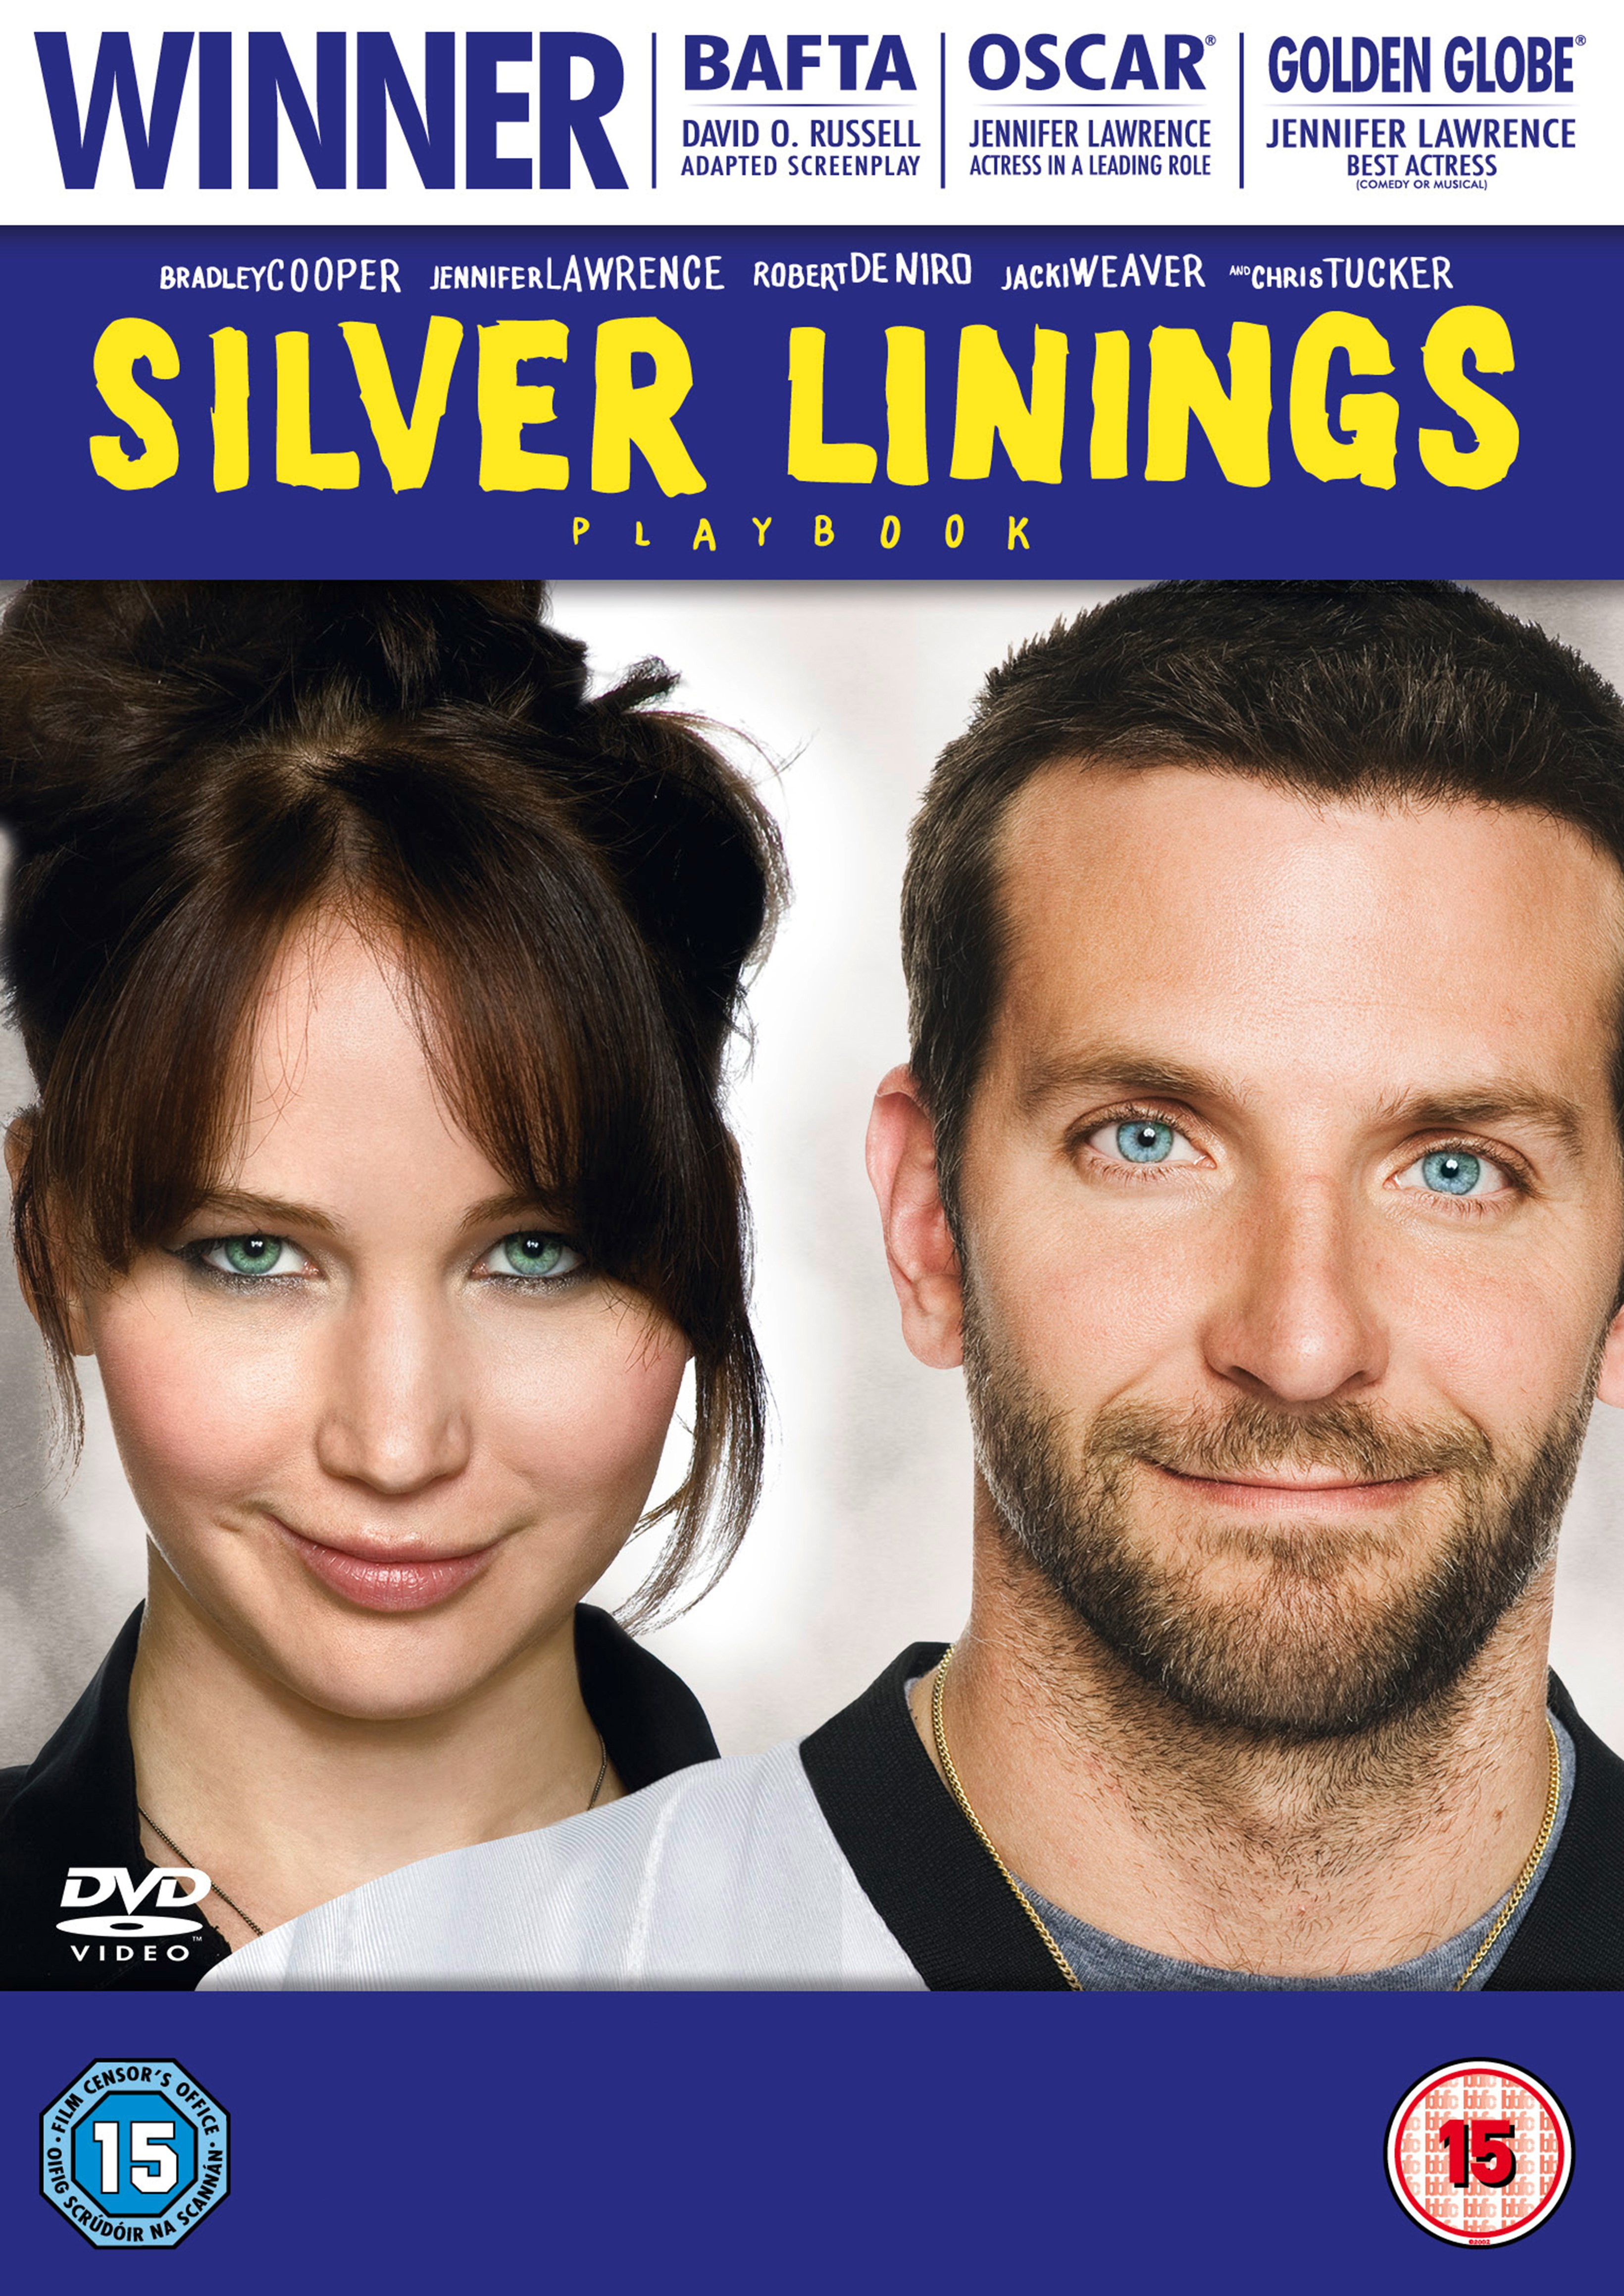 Silver Linings Playbook   DVD   Free shipping over £20